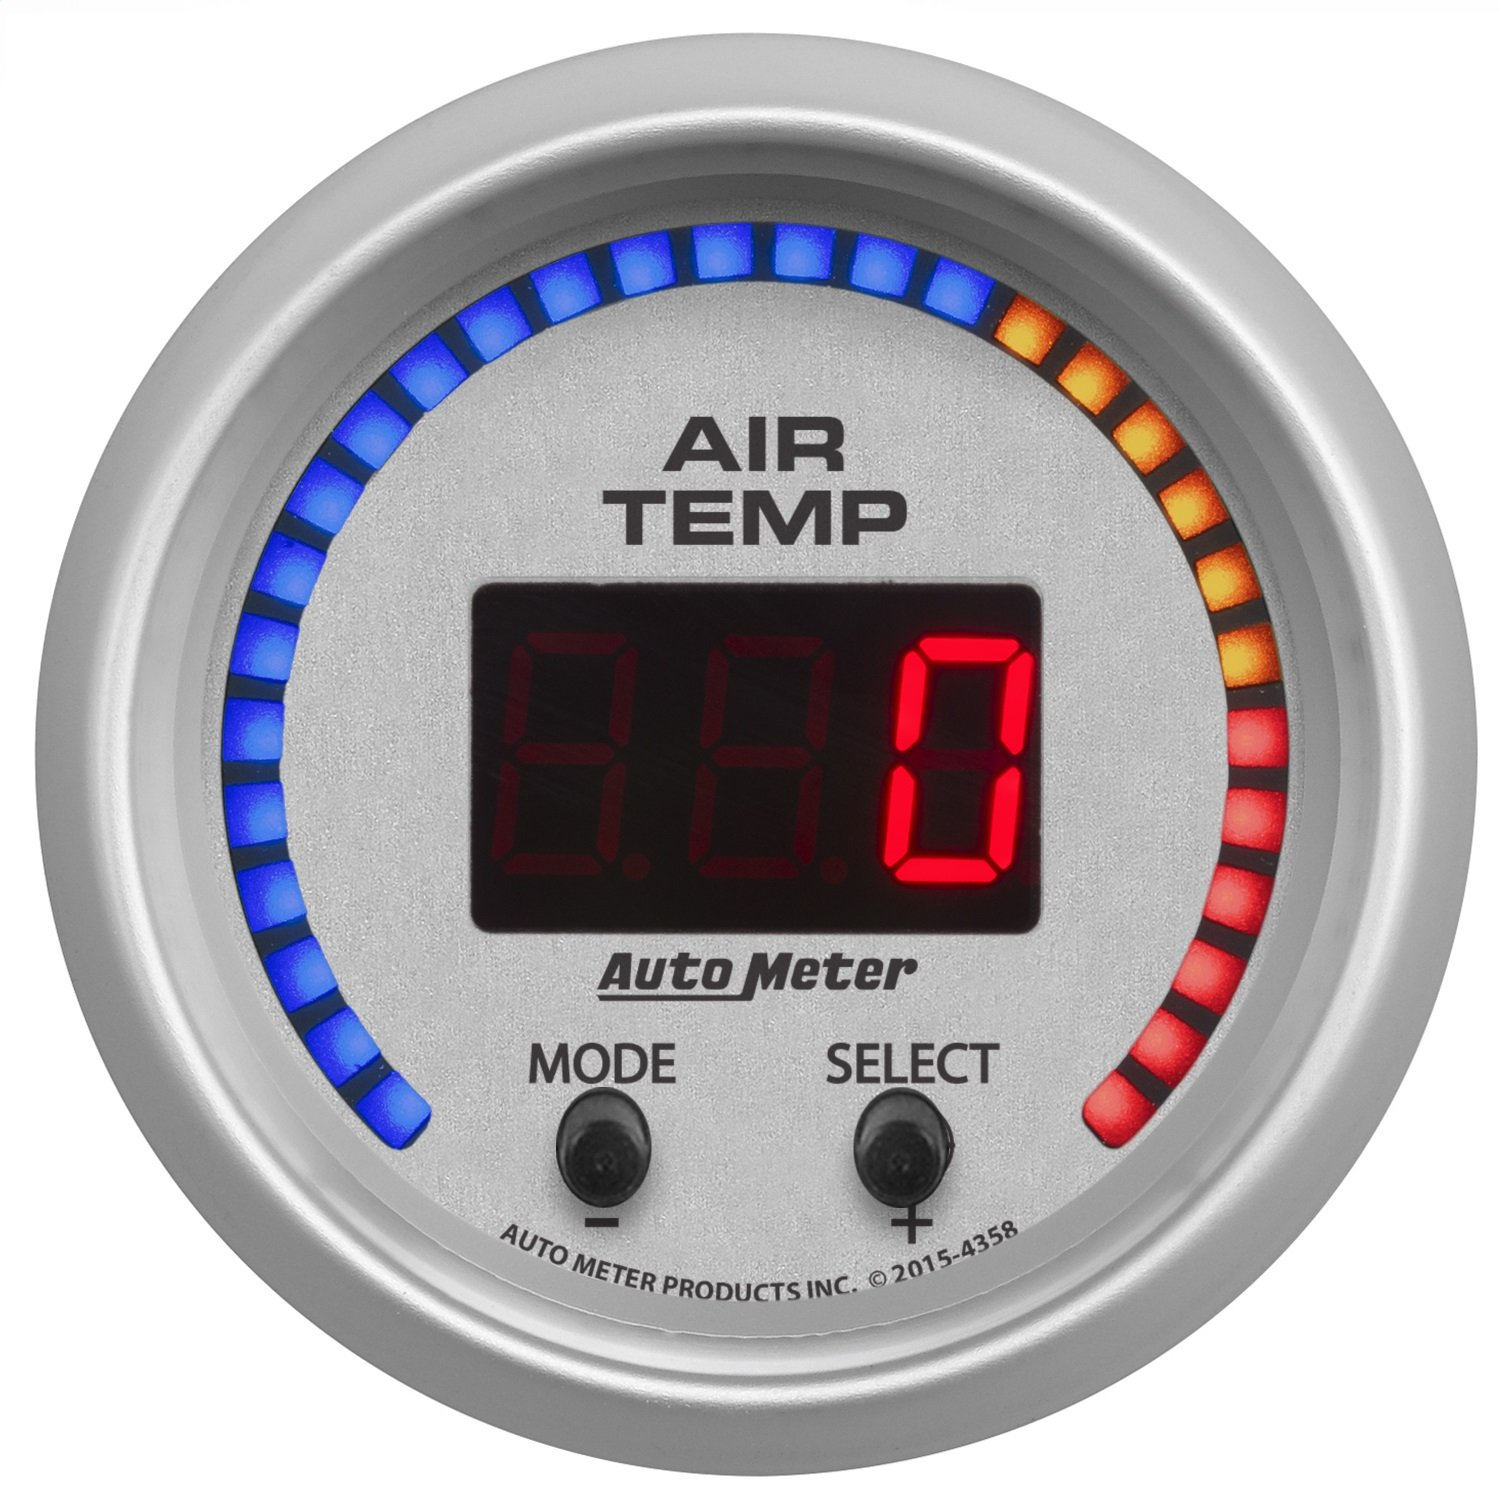 Auto Meter AutoMeter 4358 Gauge, Air Temp, Dual, 2 1/16'', 0-300ºf, Digital, Ultra-Lite